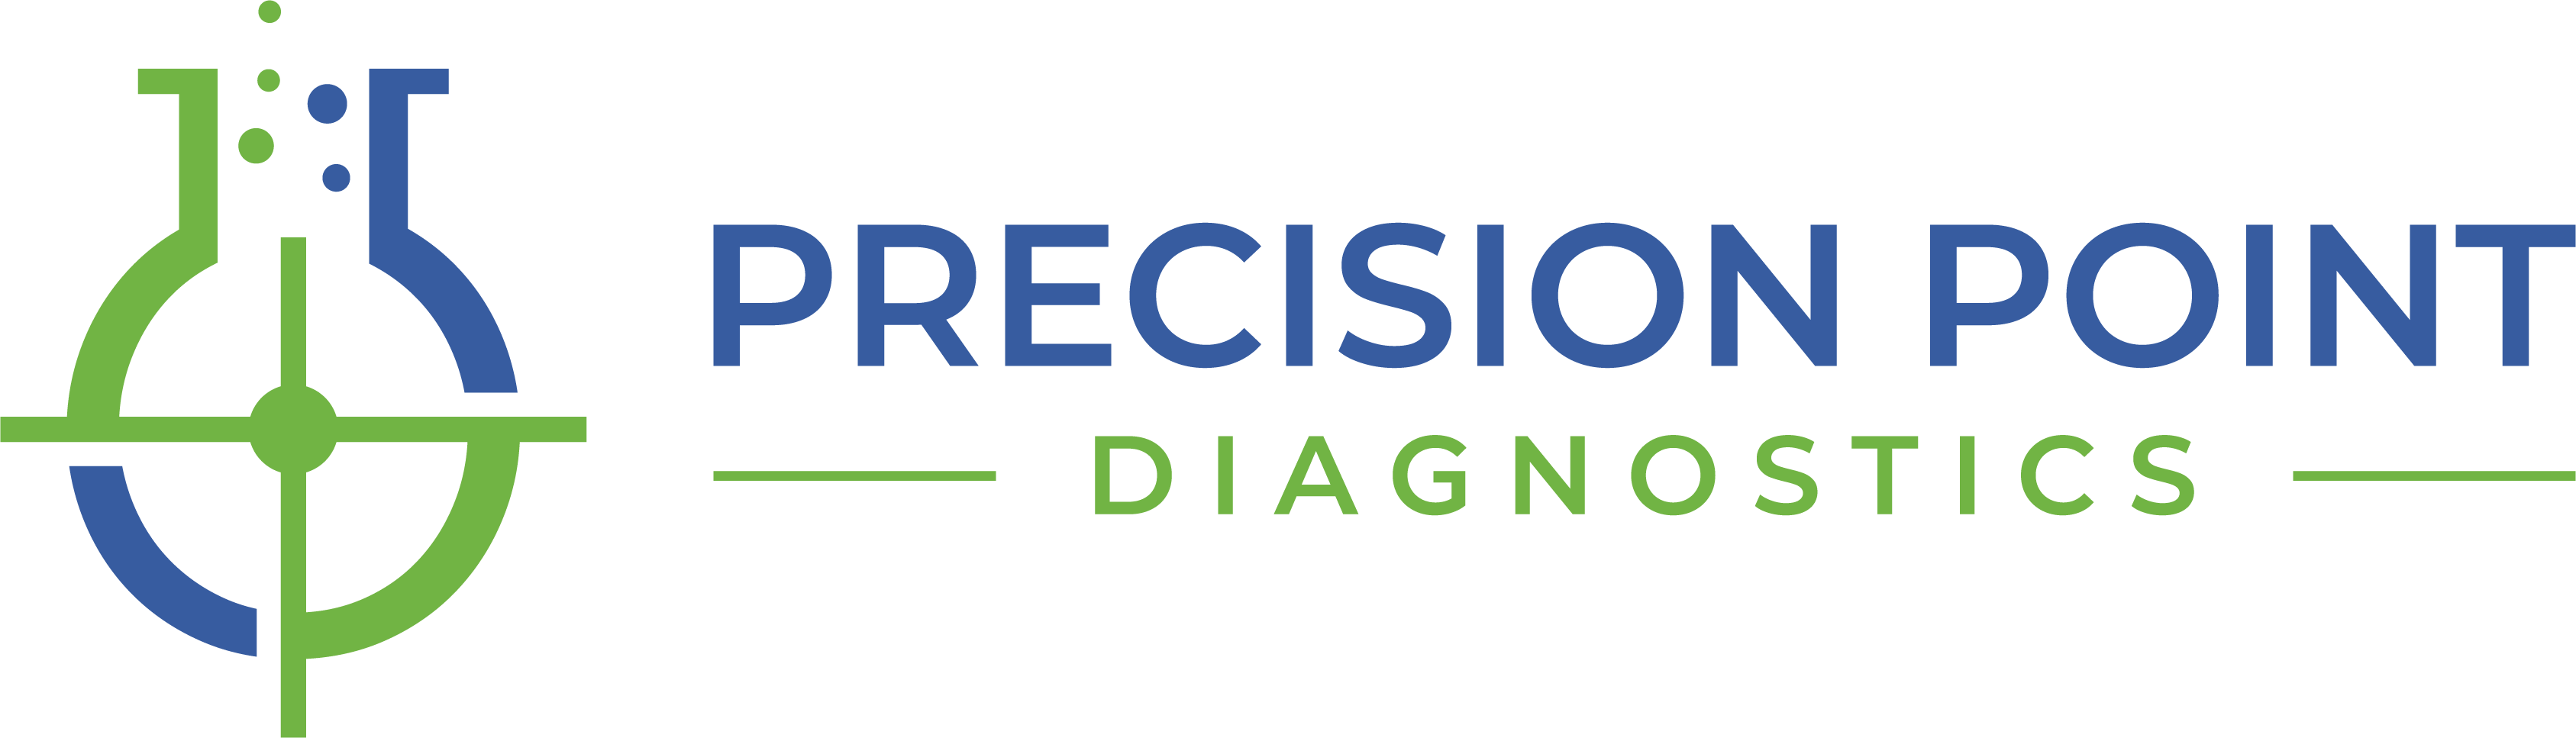 Precision Point Diagnostics